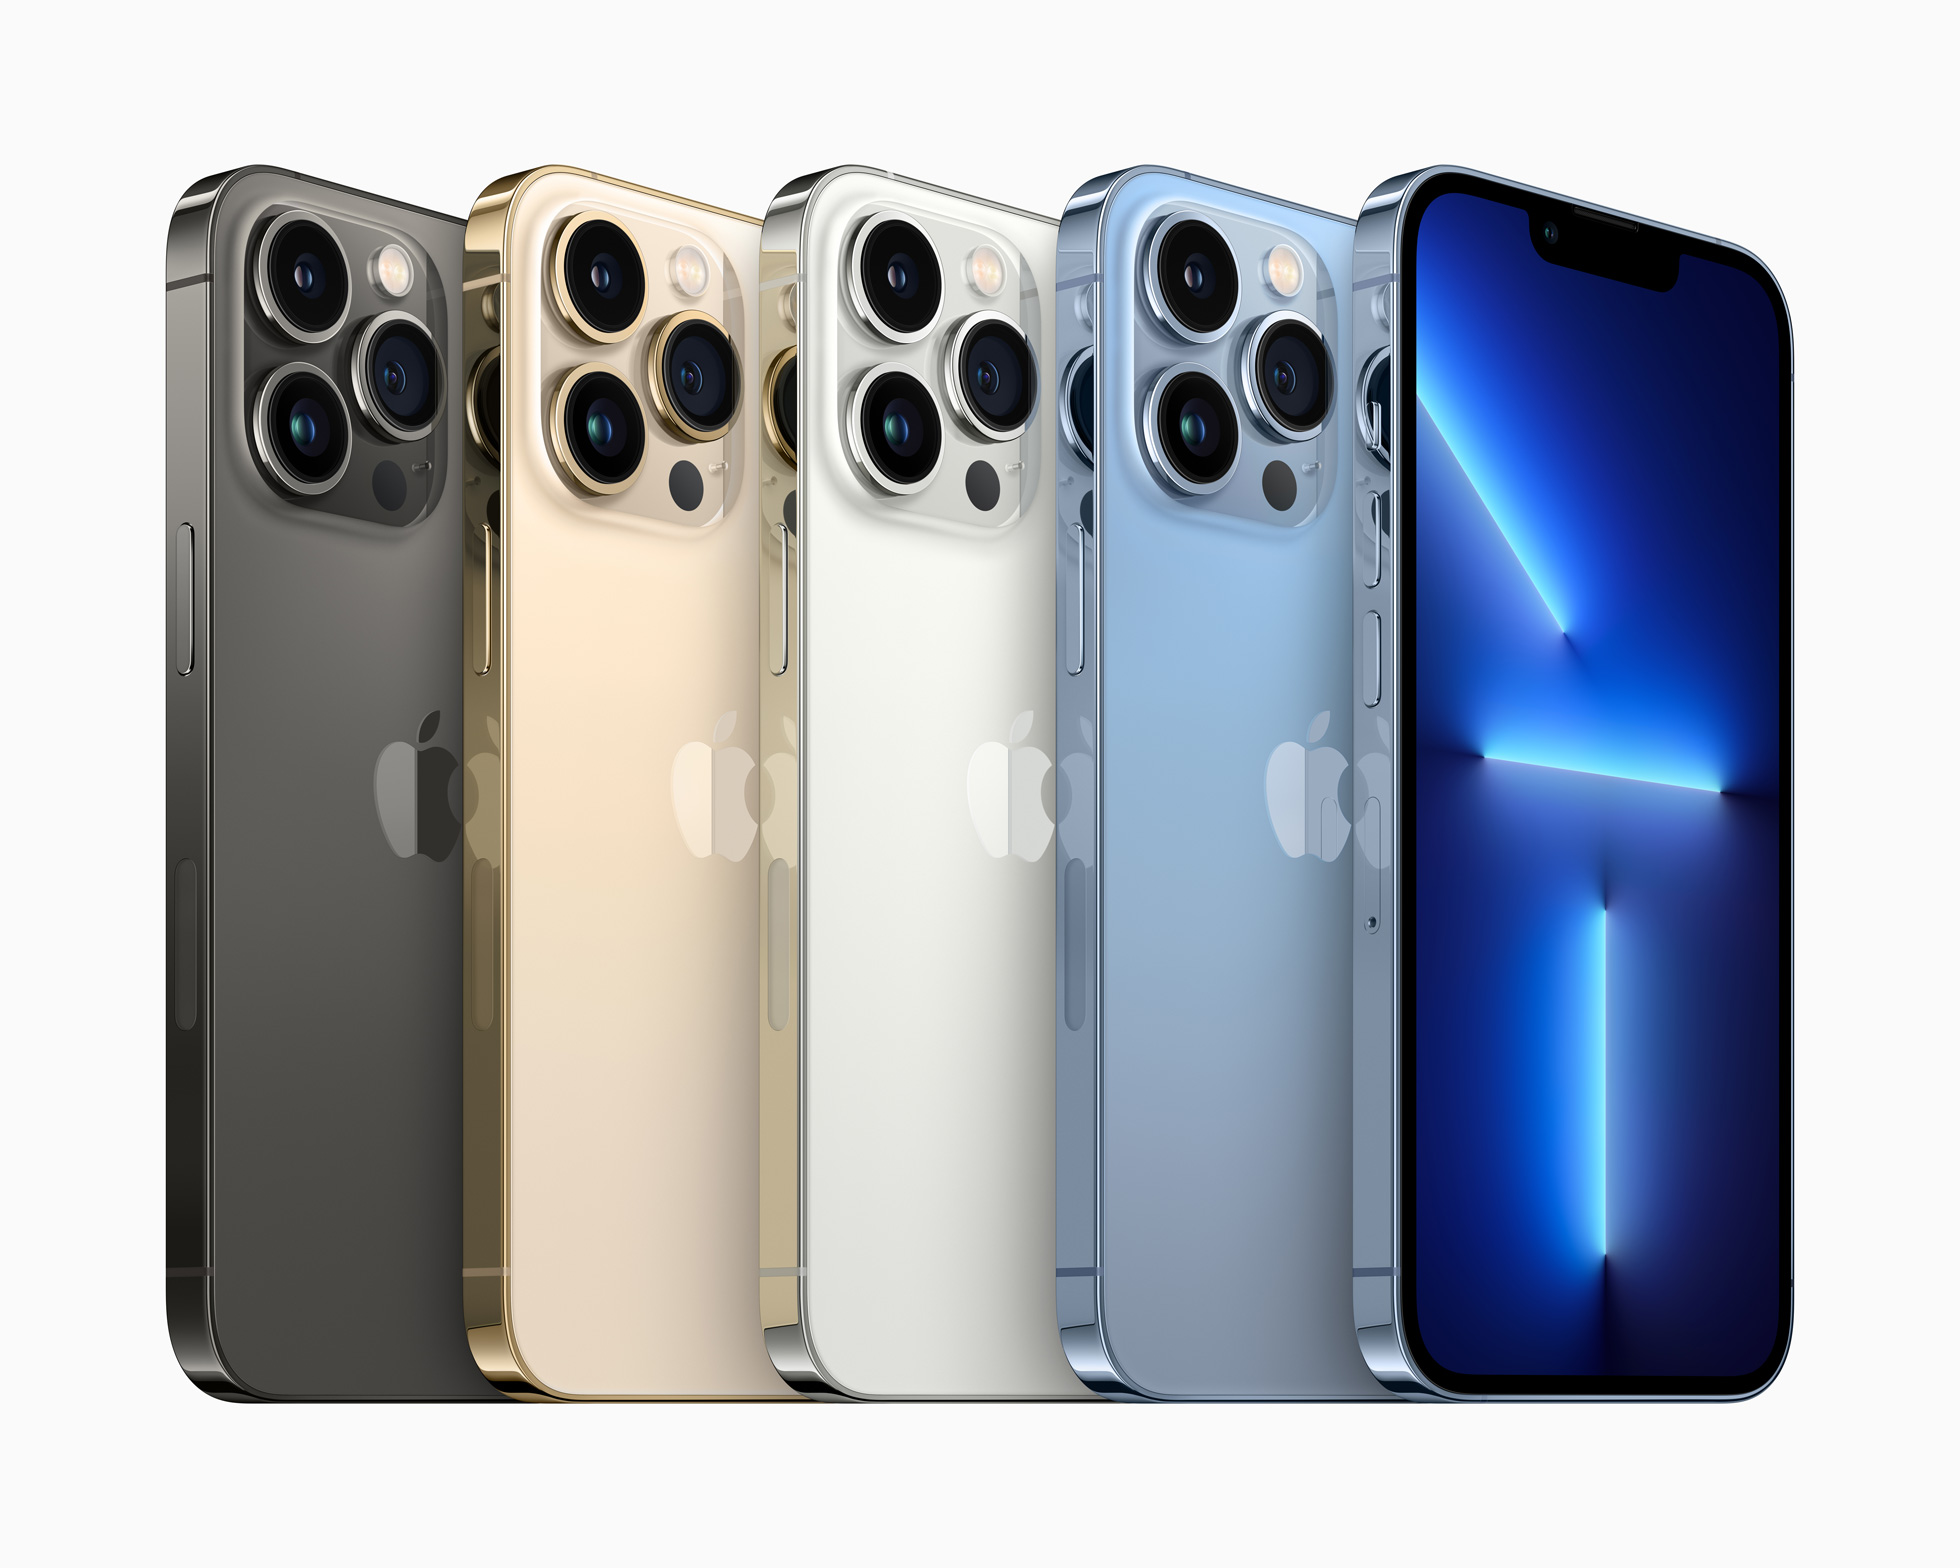 iPhone 13 Pro and iPhone 13 Pro Max technical specifications